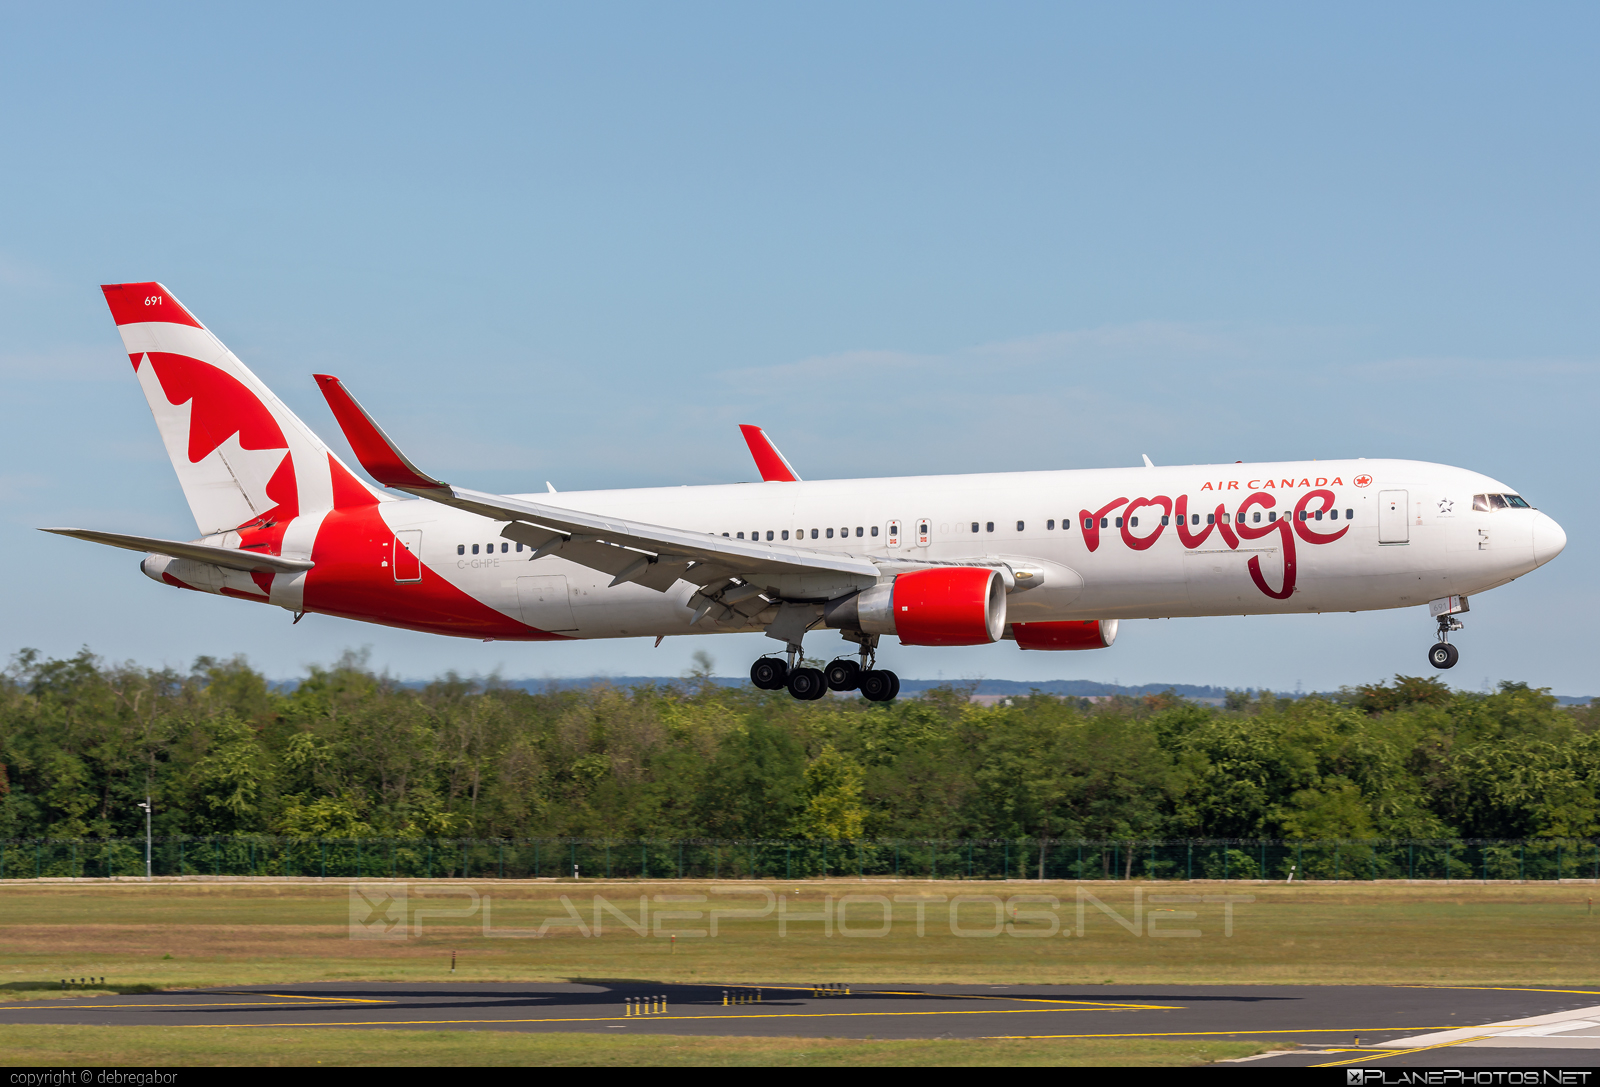 Boeing 767-300ER - C-GHPE operated by Air Canada Rouge #aircanadarouge #b767 #b767er #boeing #boeing767